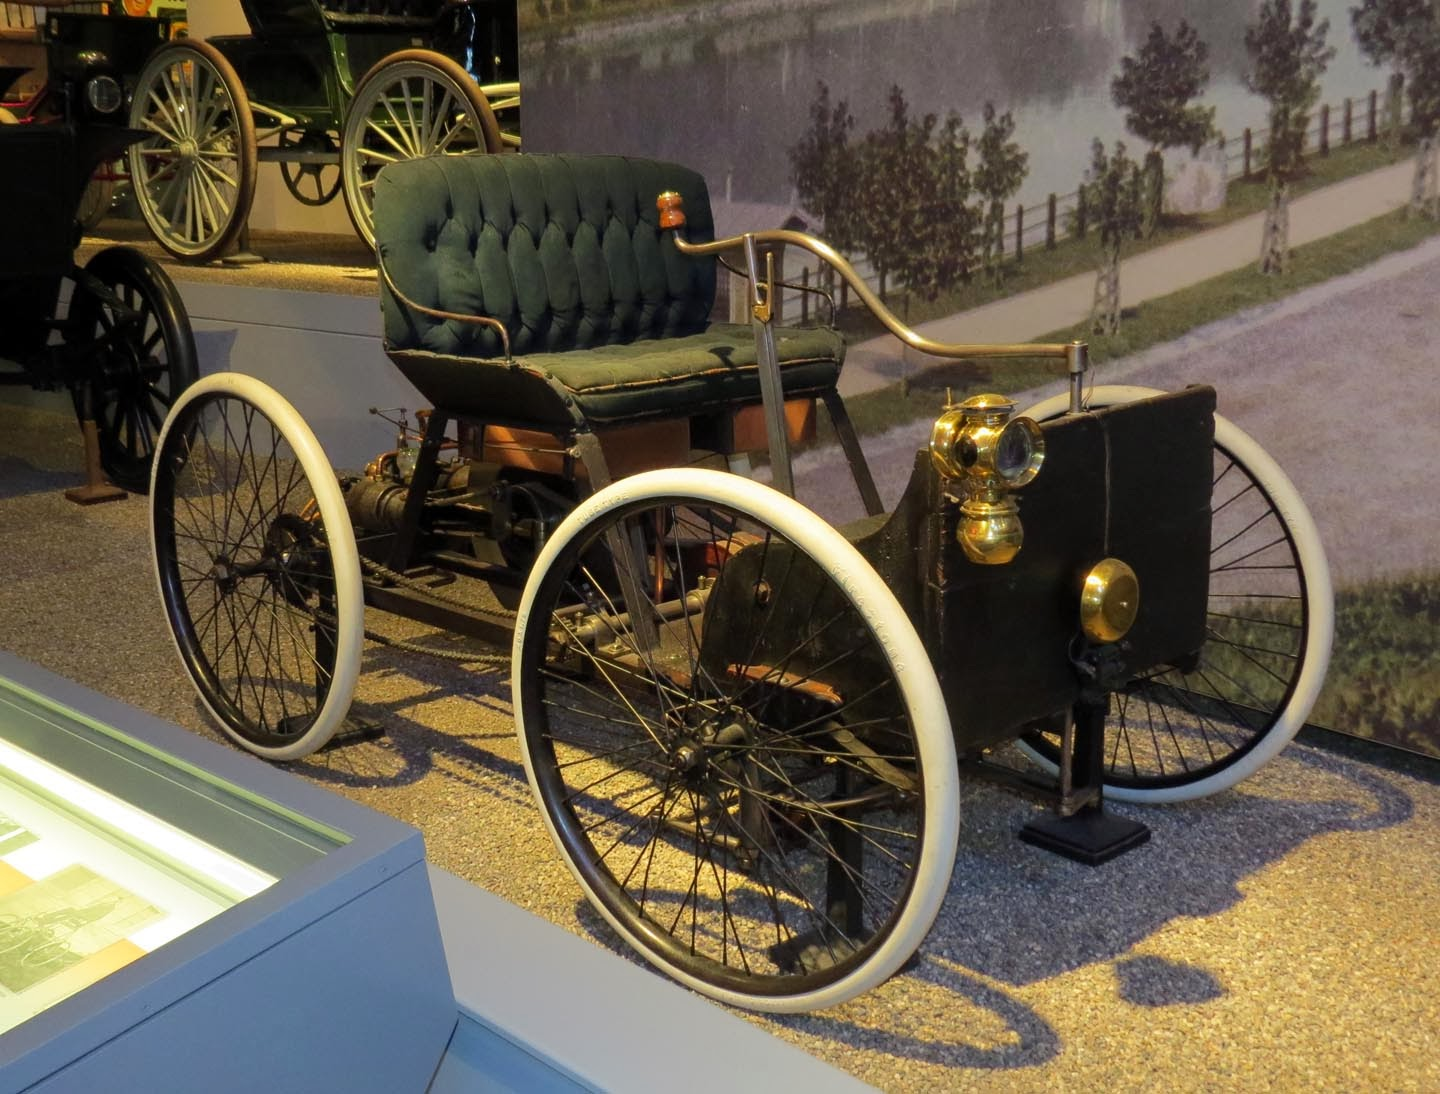 Fountainhead Antique Auto Museum: On the Road: The Henry Ford Museum